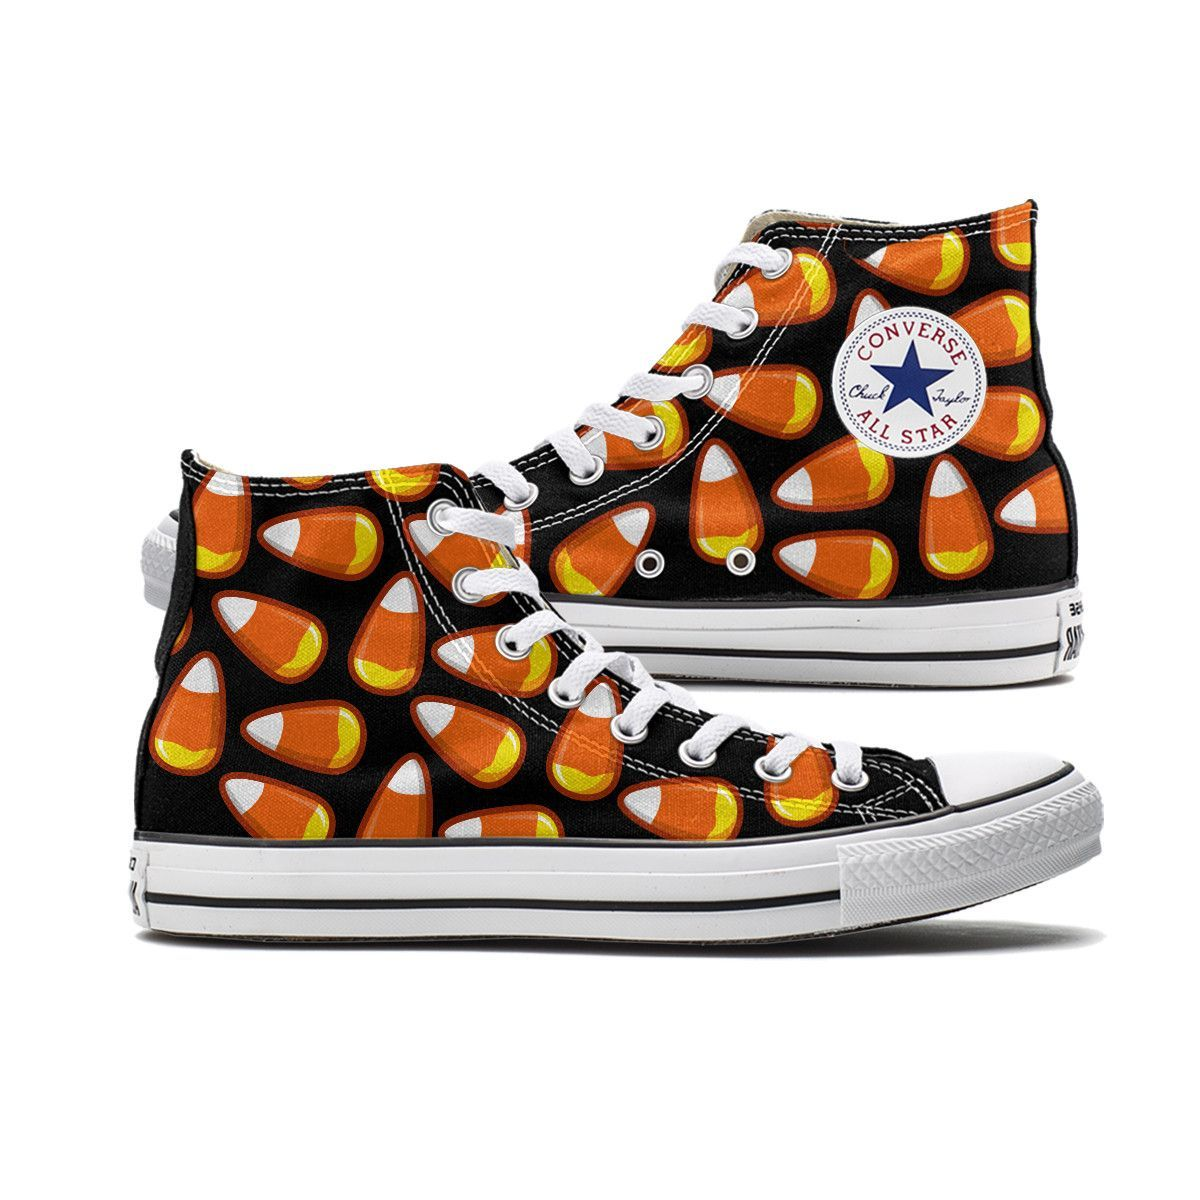 438b26d1a34a Candy Corn Converse Black High Top chucks are here and made to order  especially for you. These Chucks feature a Candy Corn pattern over both  panels of the ...